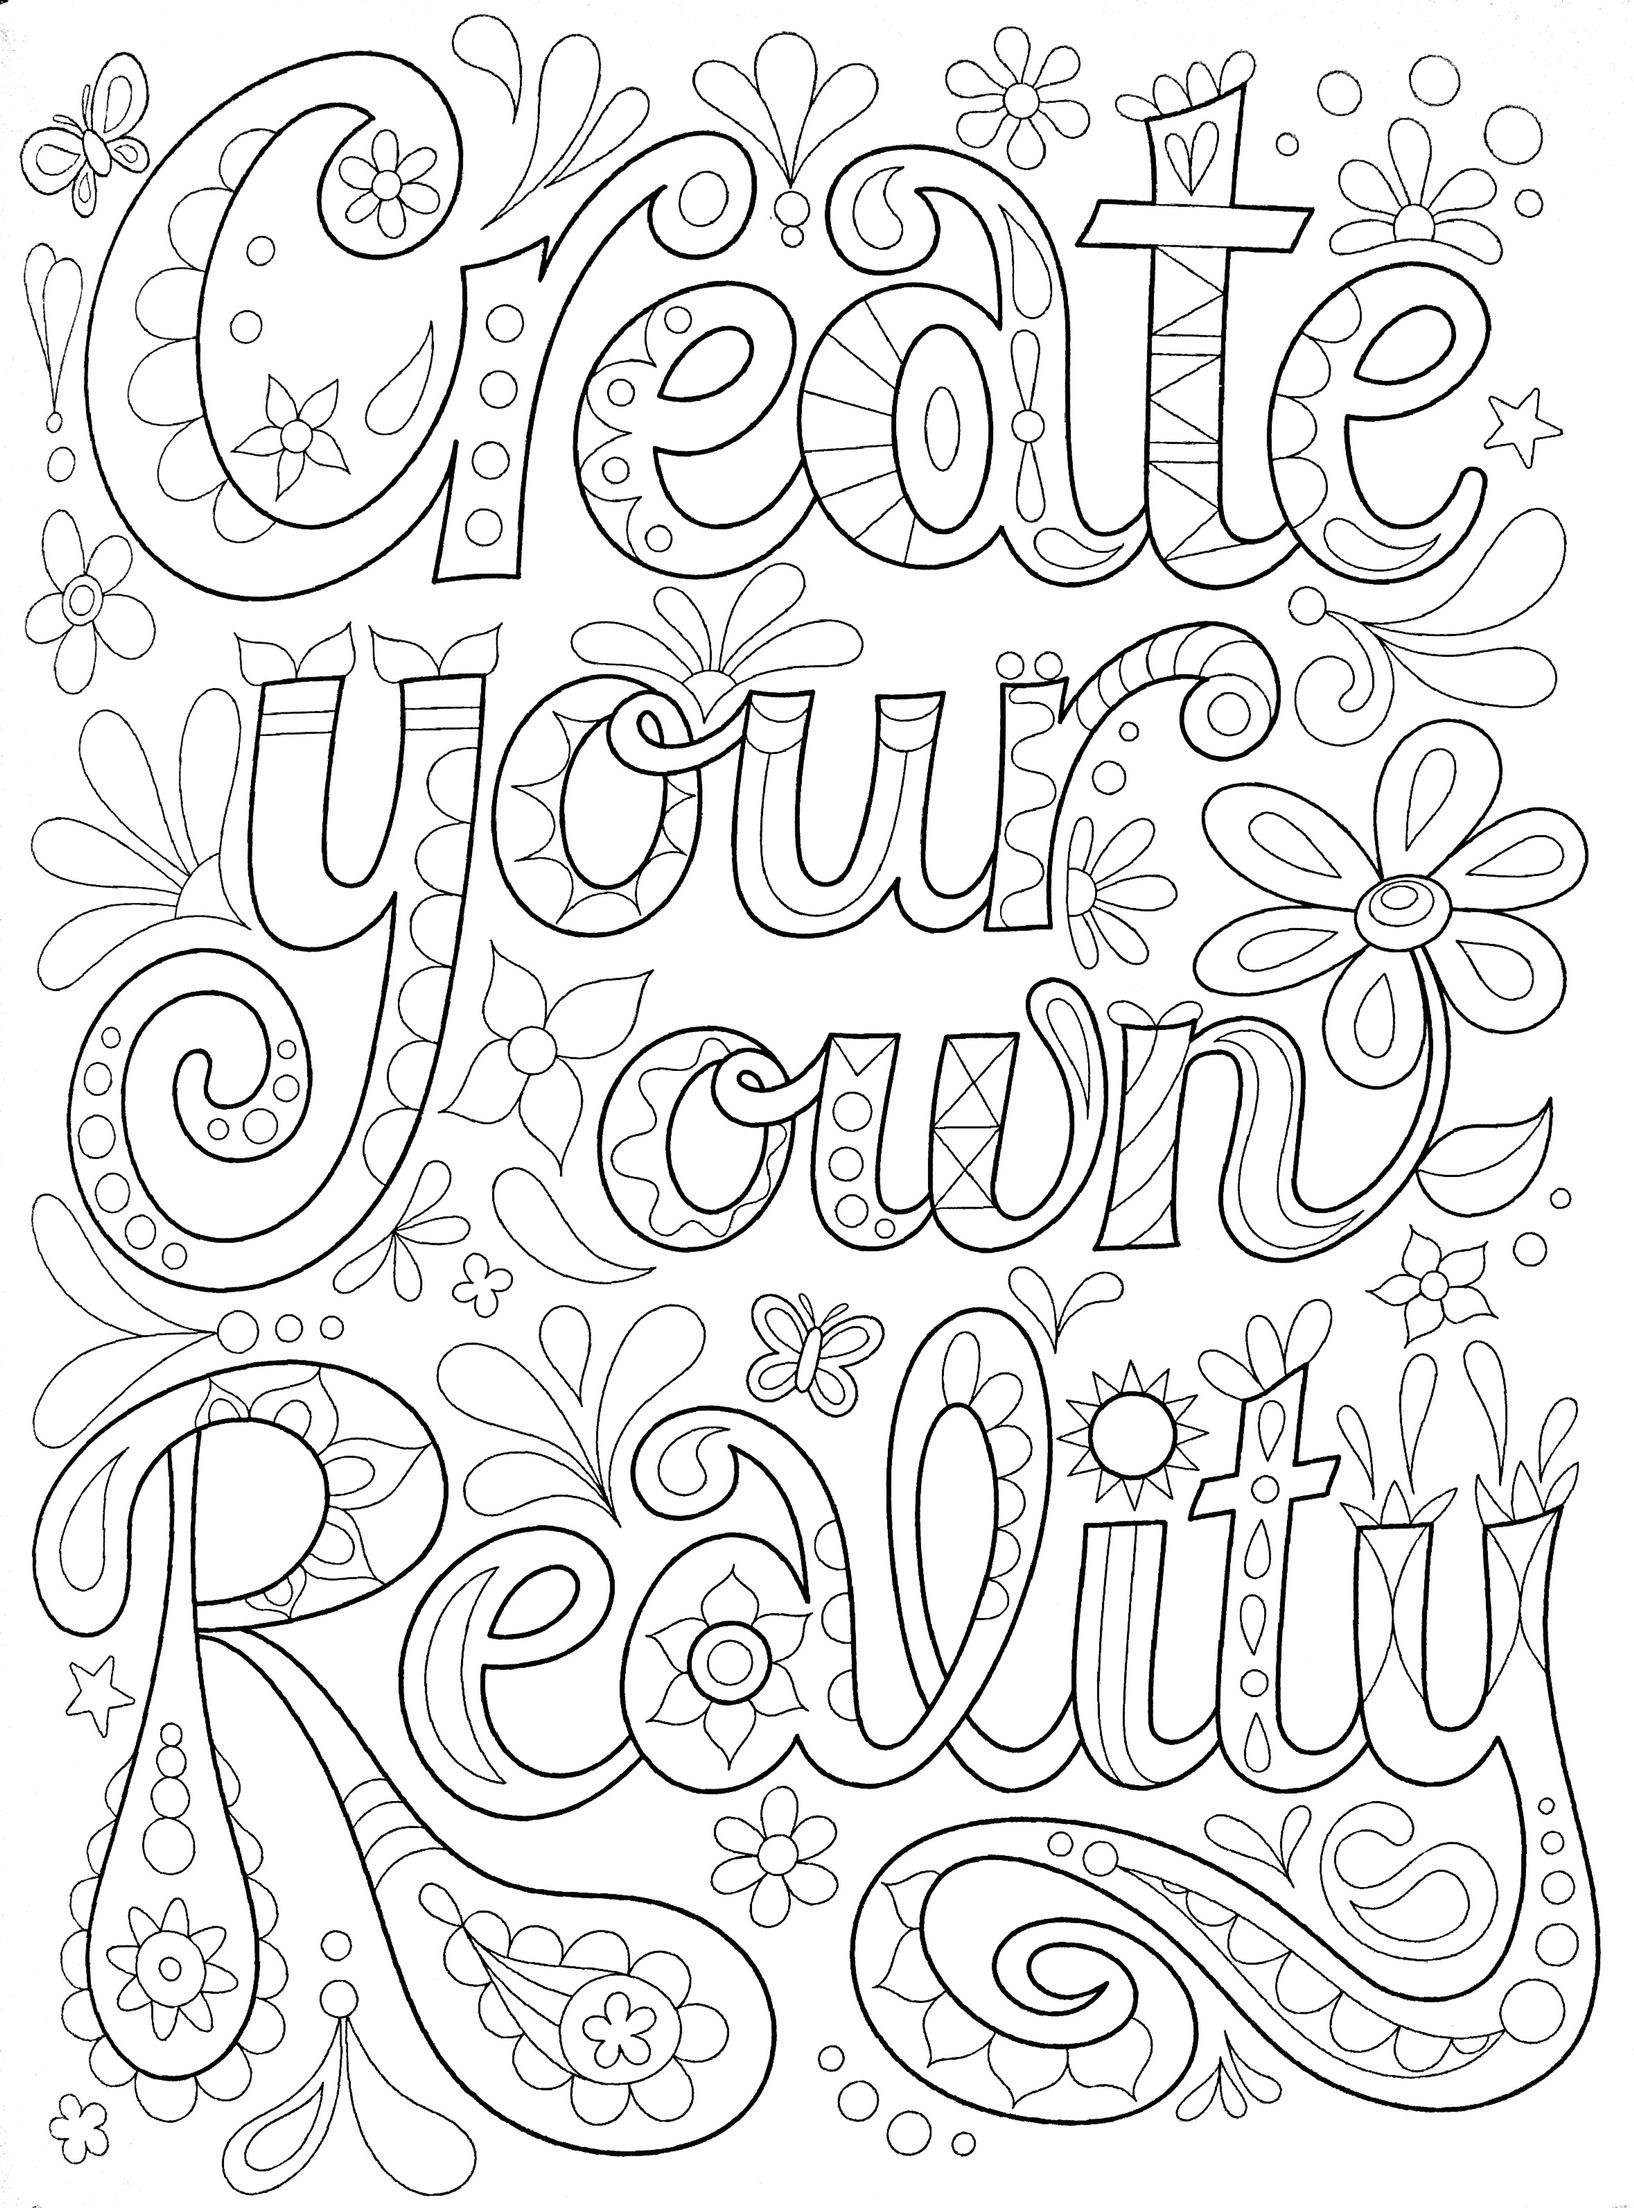 free printable coloring quotes quote coloring pages for adults and teens best coloring printable coloring free quotes